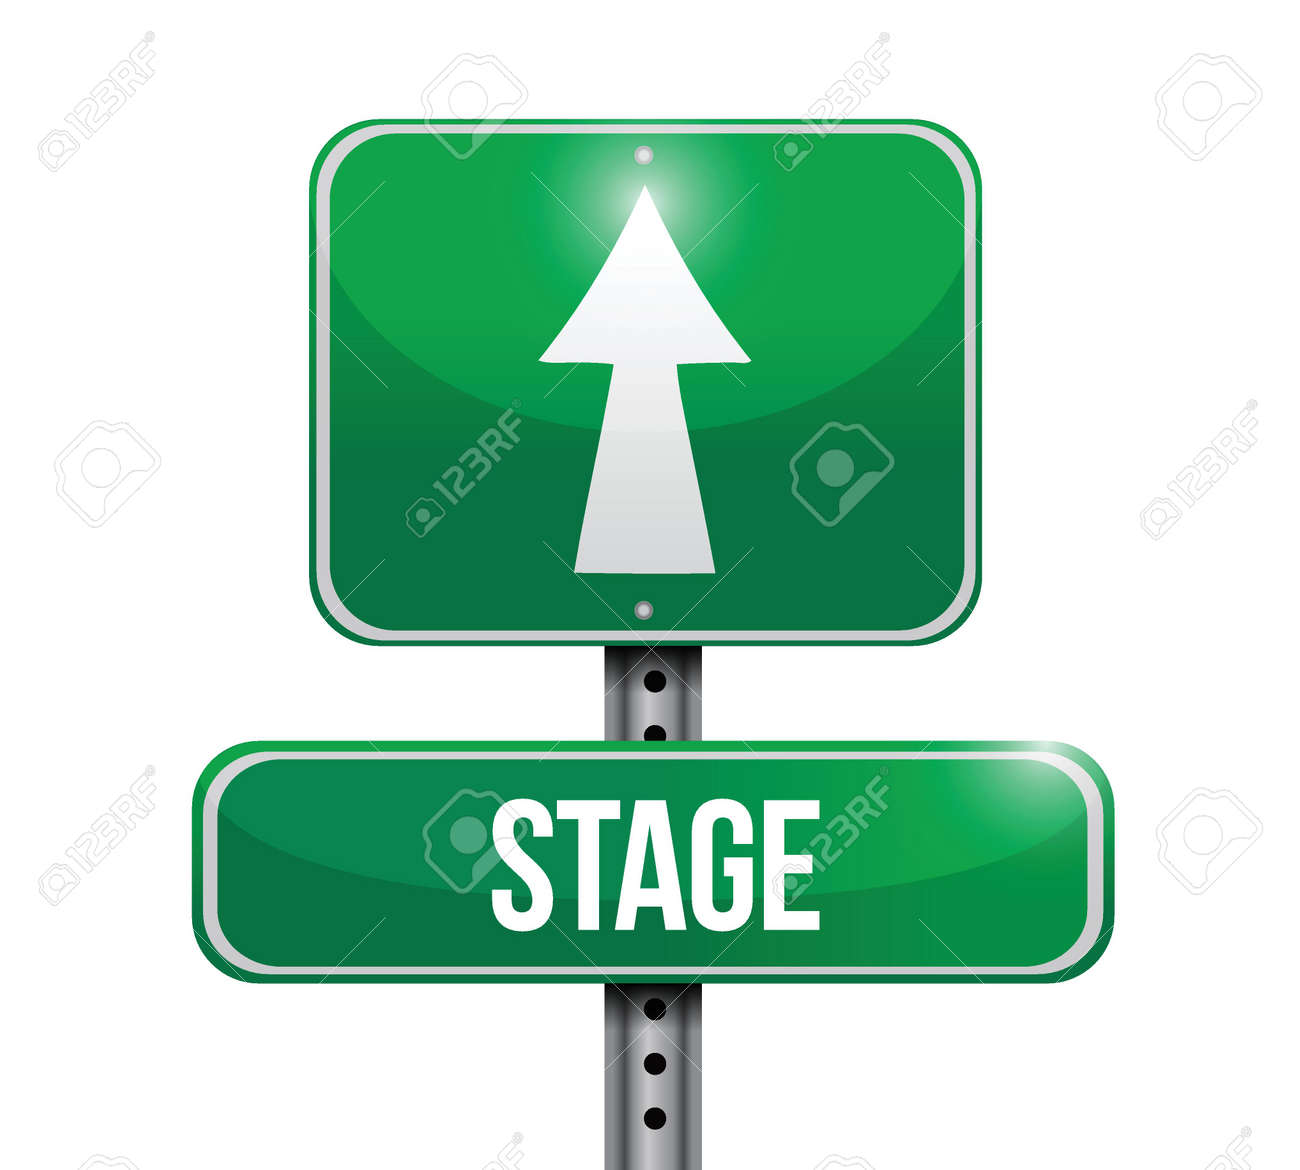 stage road sign illustrations design over a white background Stock Vector - 22860214